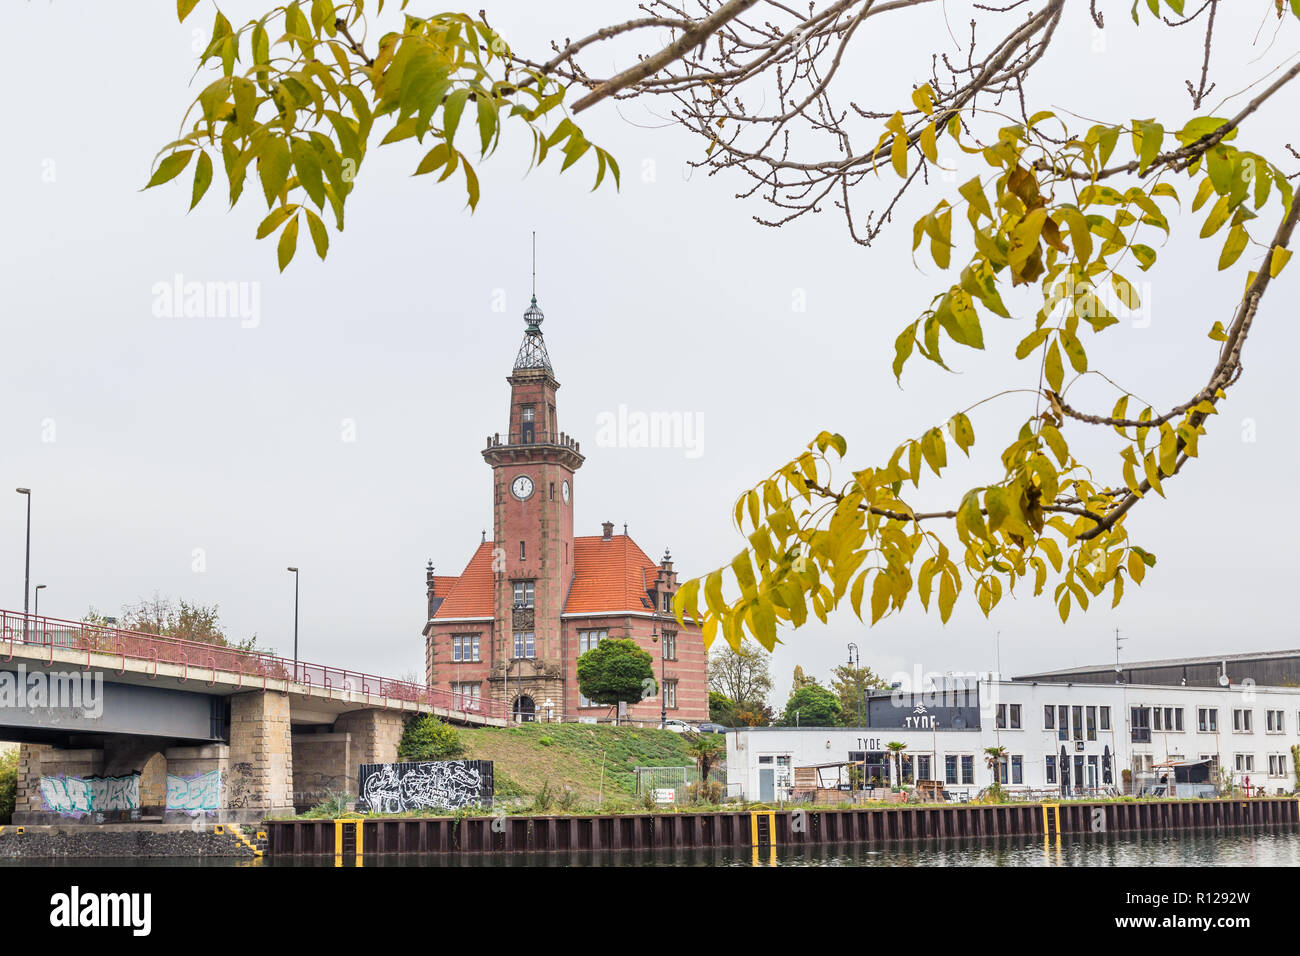 Dortmund, North Rhine Westphalia, Germany - October 19, 2018:  Old port authority (Altes Hafenamt) in Dortmund Germany. - Stock Image